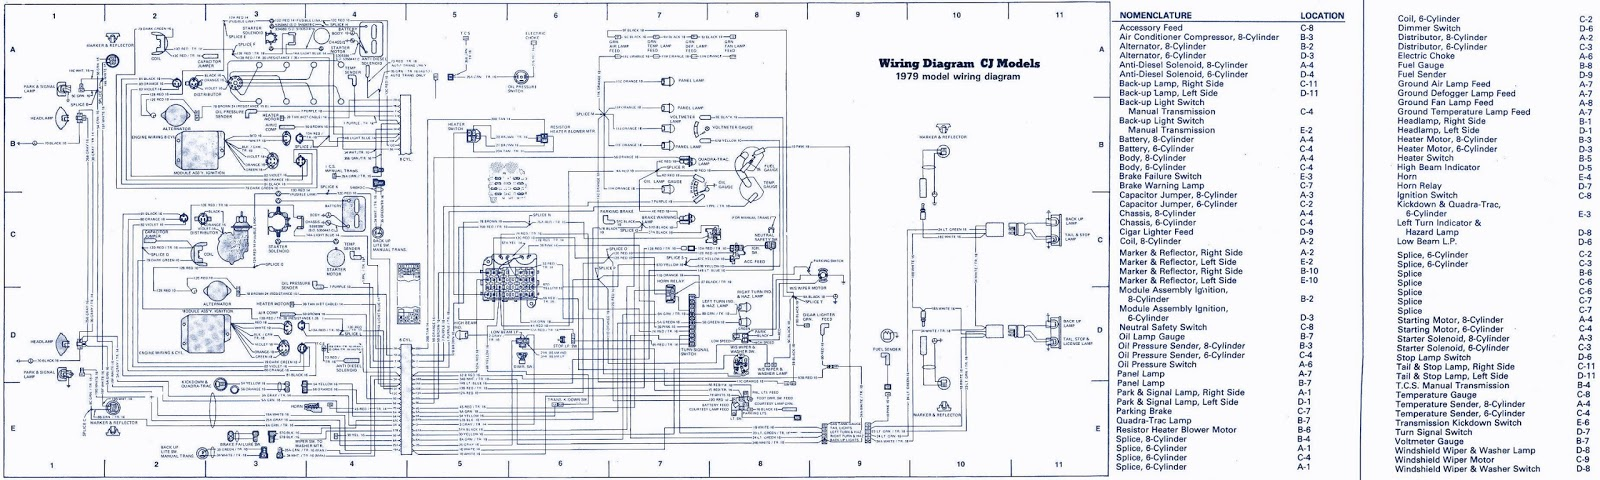 1979+Jeep+CJ+Models+Elecrical+Wiring+Diagram 1980 jeep cj5 wiring diagram electrical wiring diagrams for 1985 cj7 wiring diagram at gsmx.co